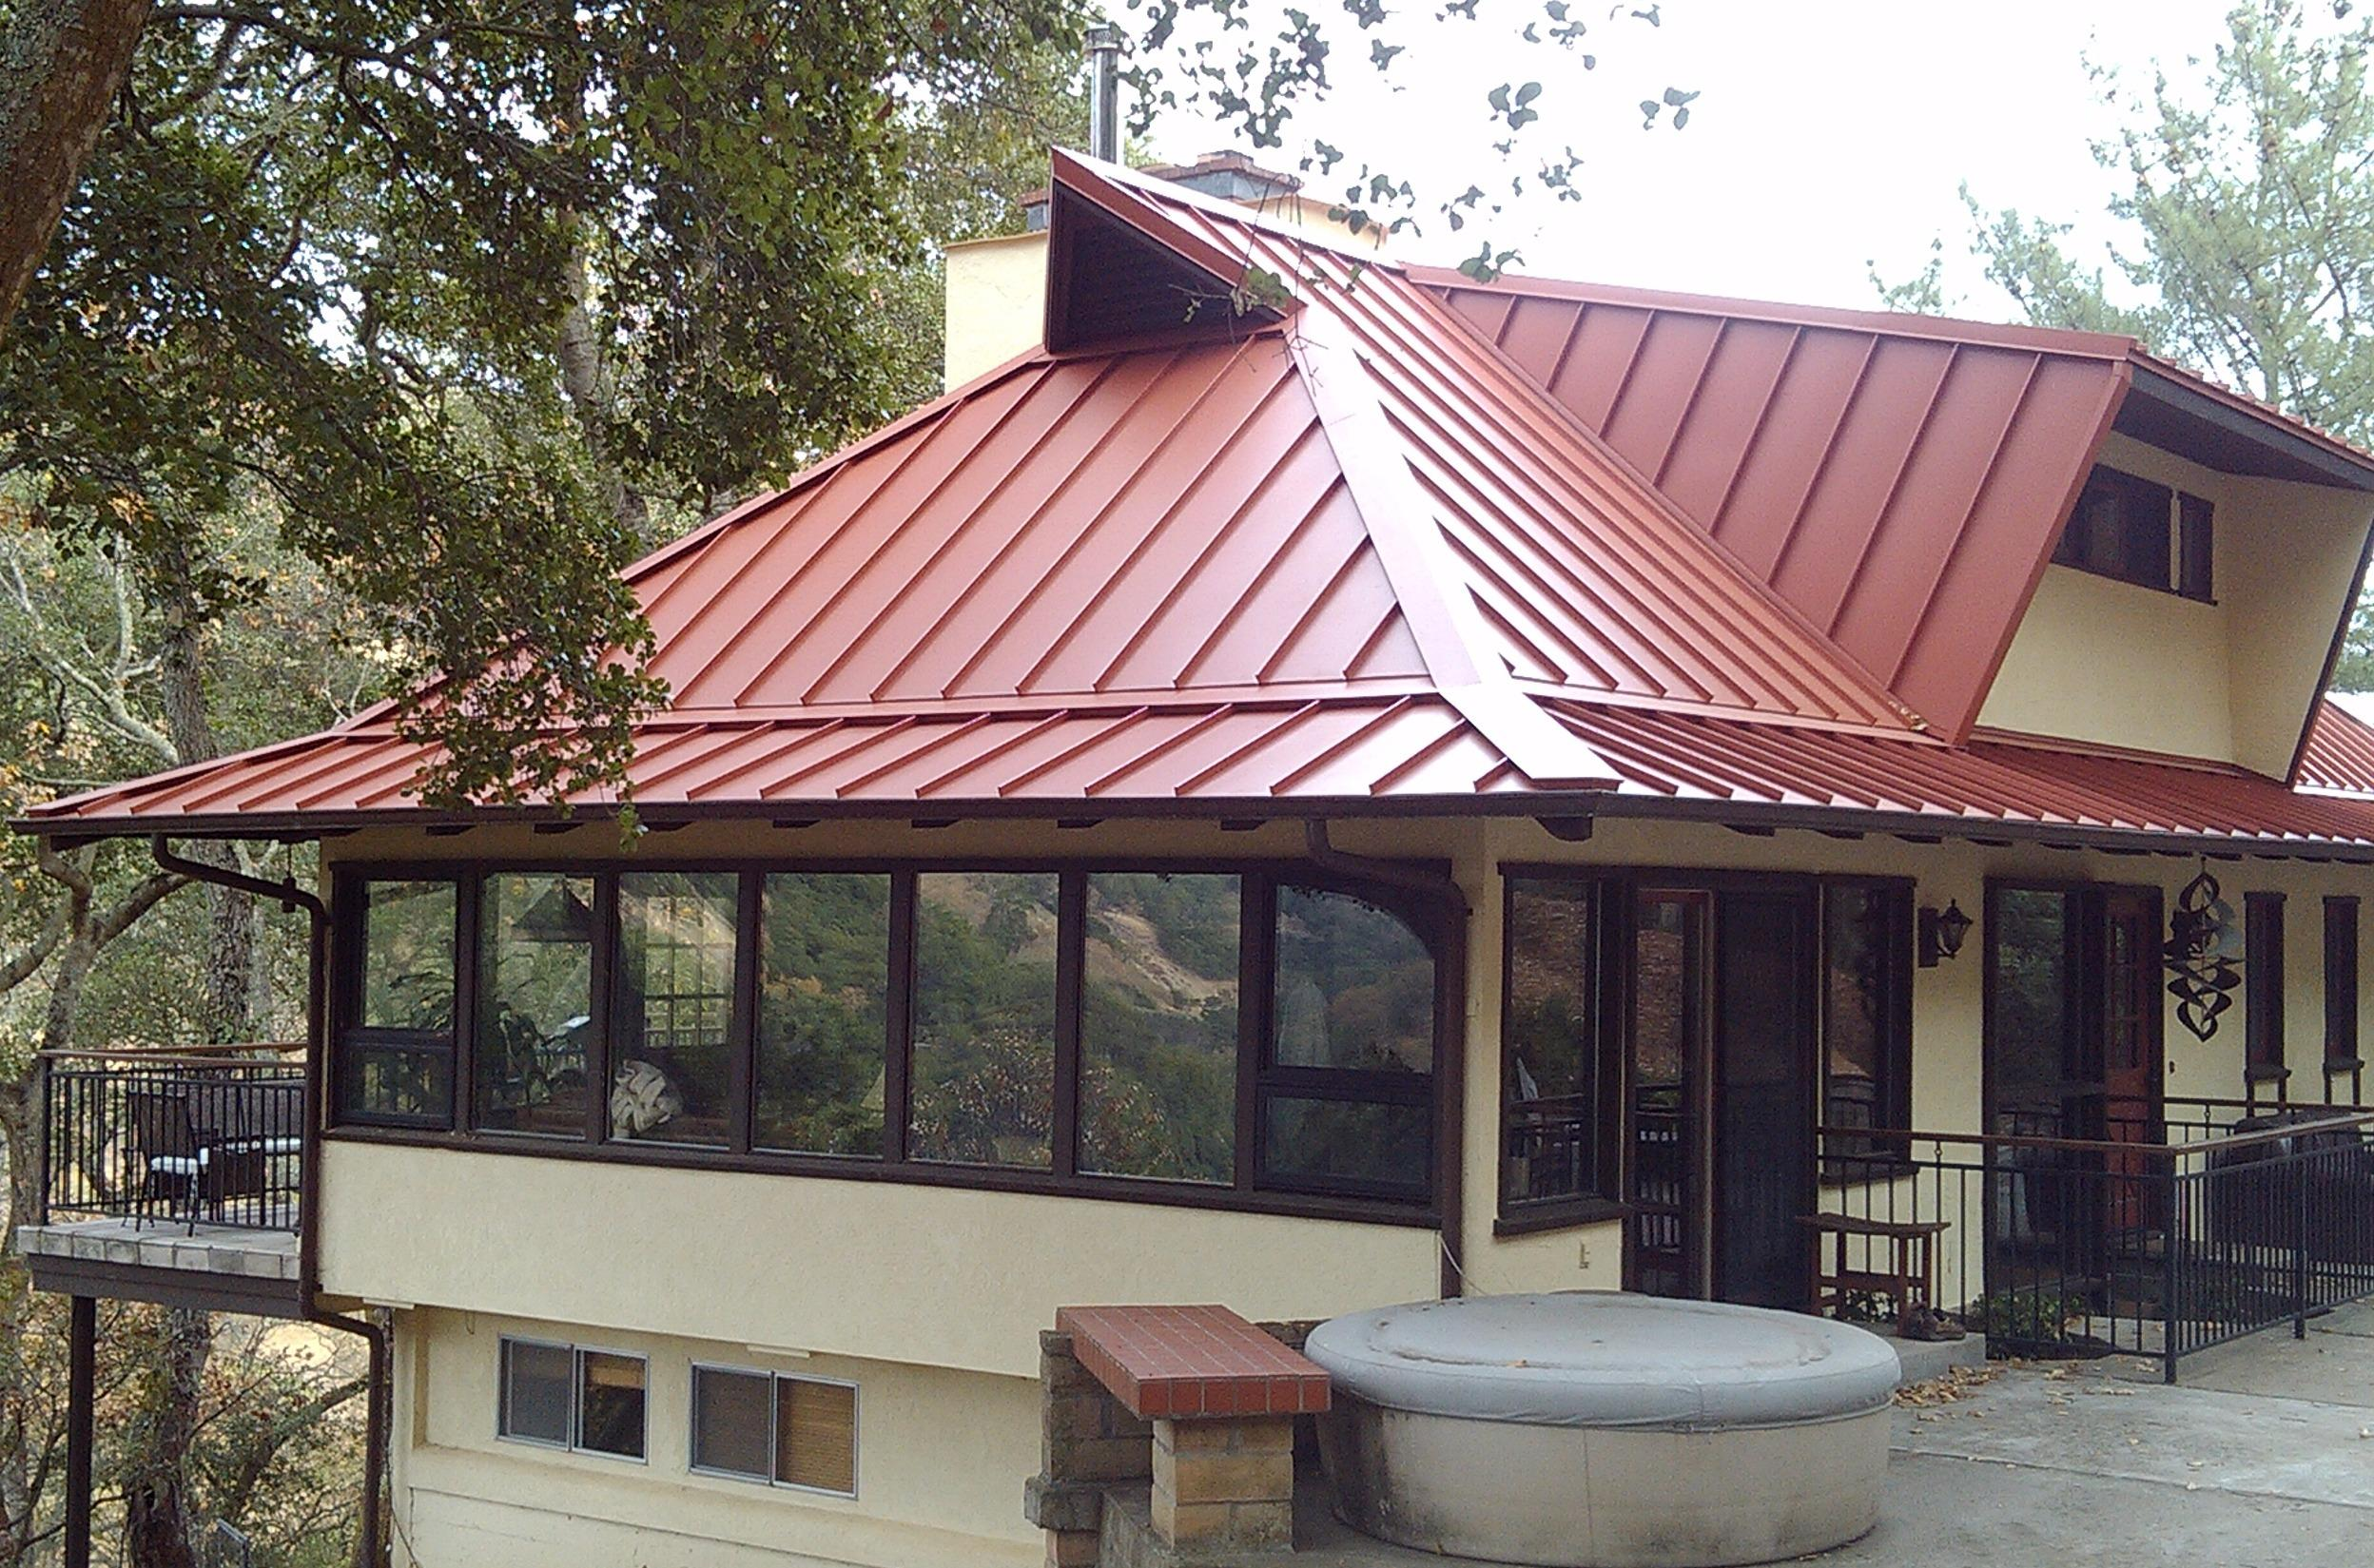 Western roofing system at 44250 old warm springs blvd for 3517 birchwood terrace fremont ca